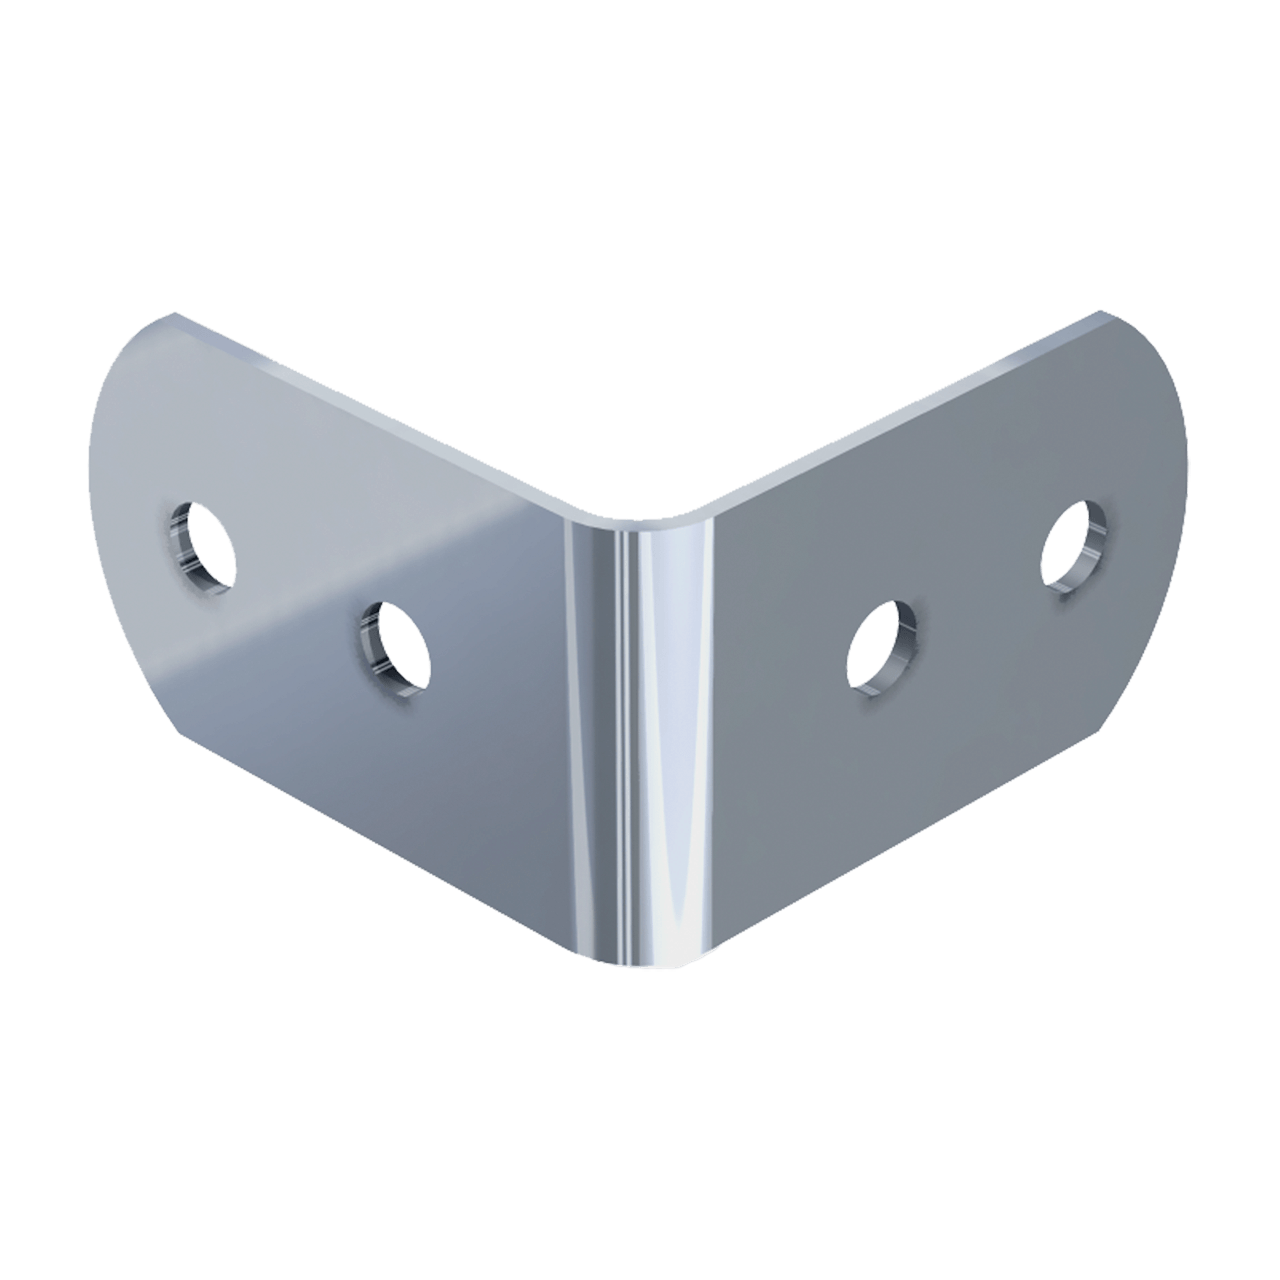 Small Four-Hole Clamp, 3/4 view